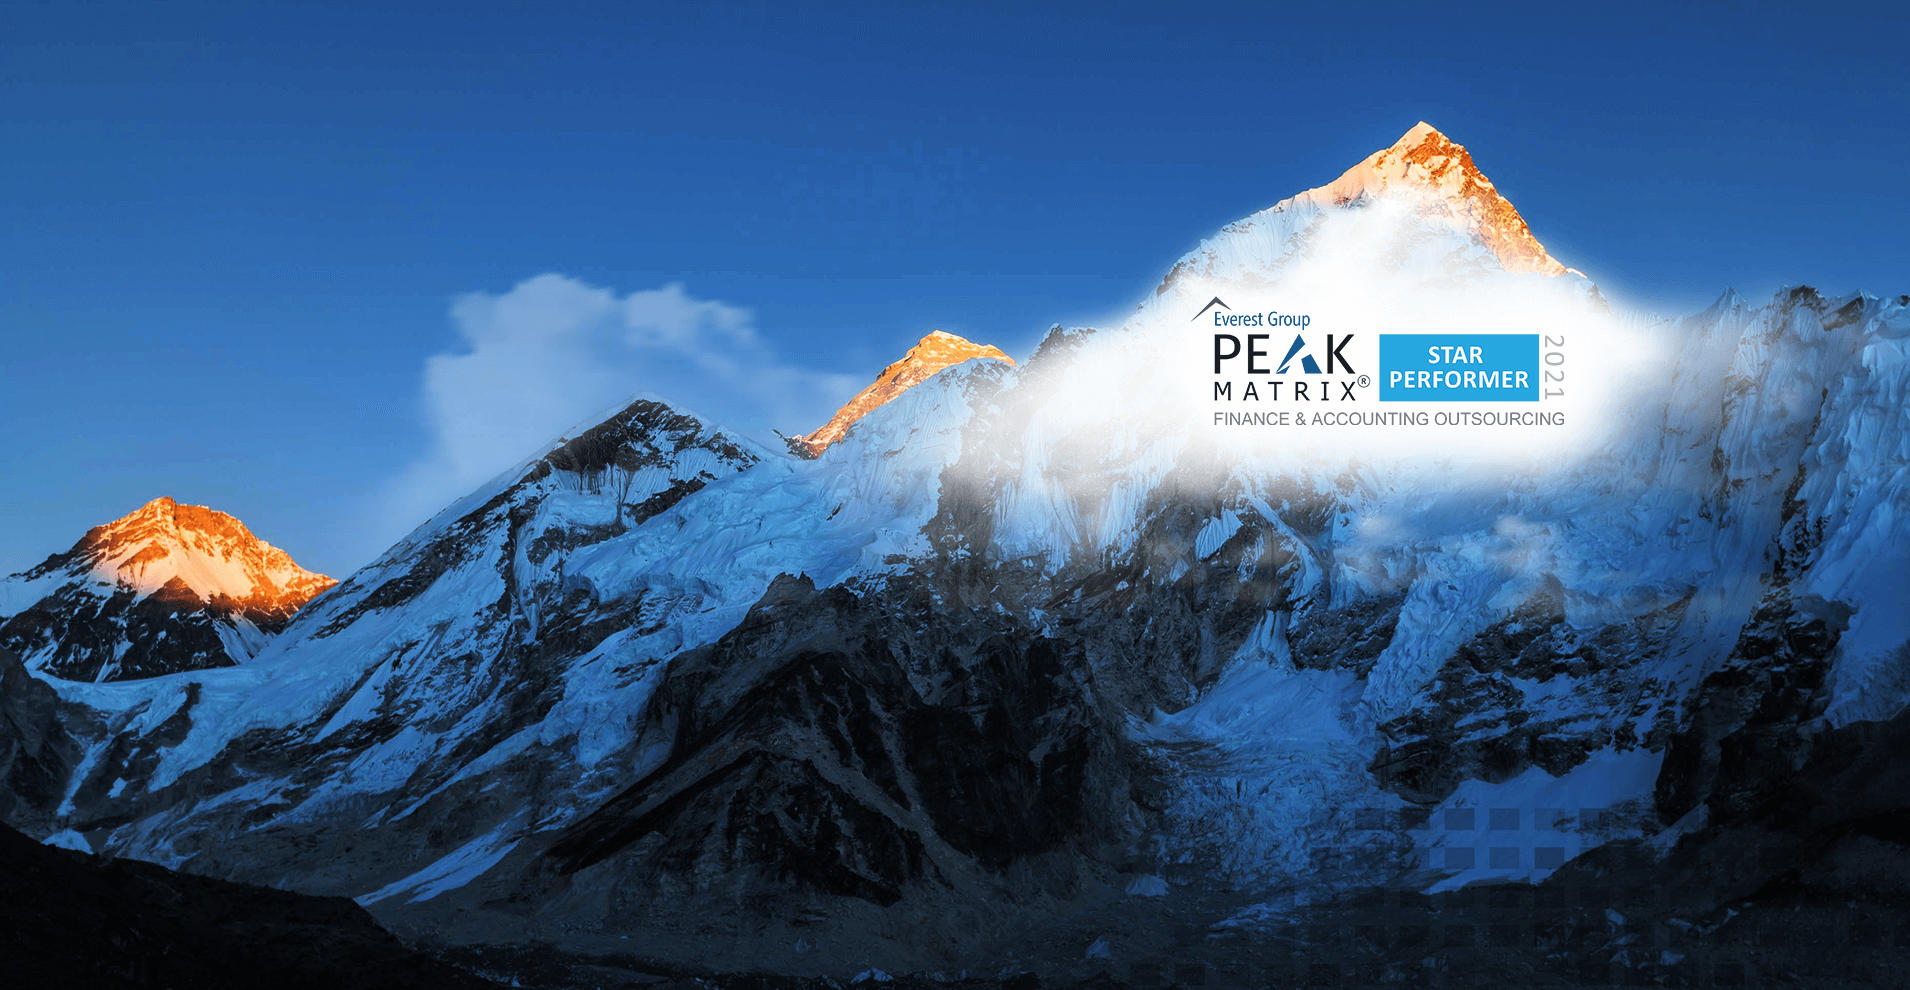 Everest-PEAK-Matrix-Report-on-Finance-&-Accounting-Outsourcing-website-Banner